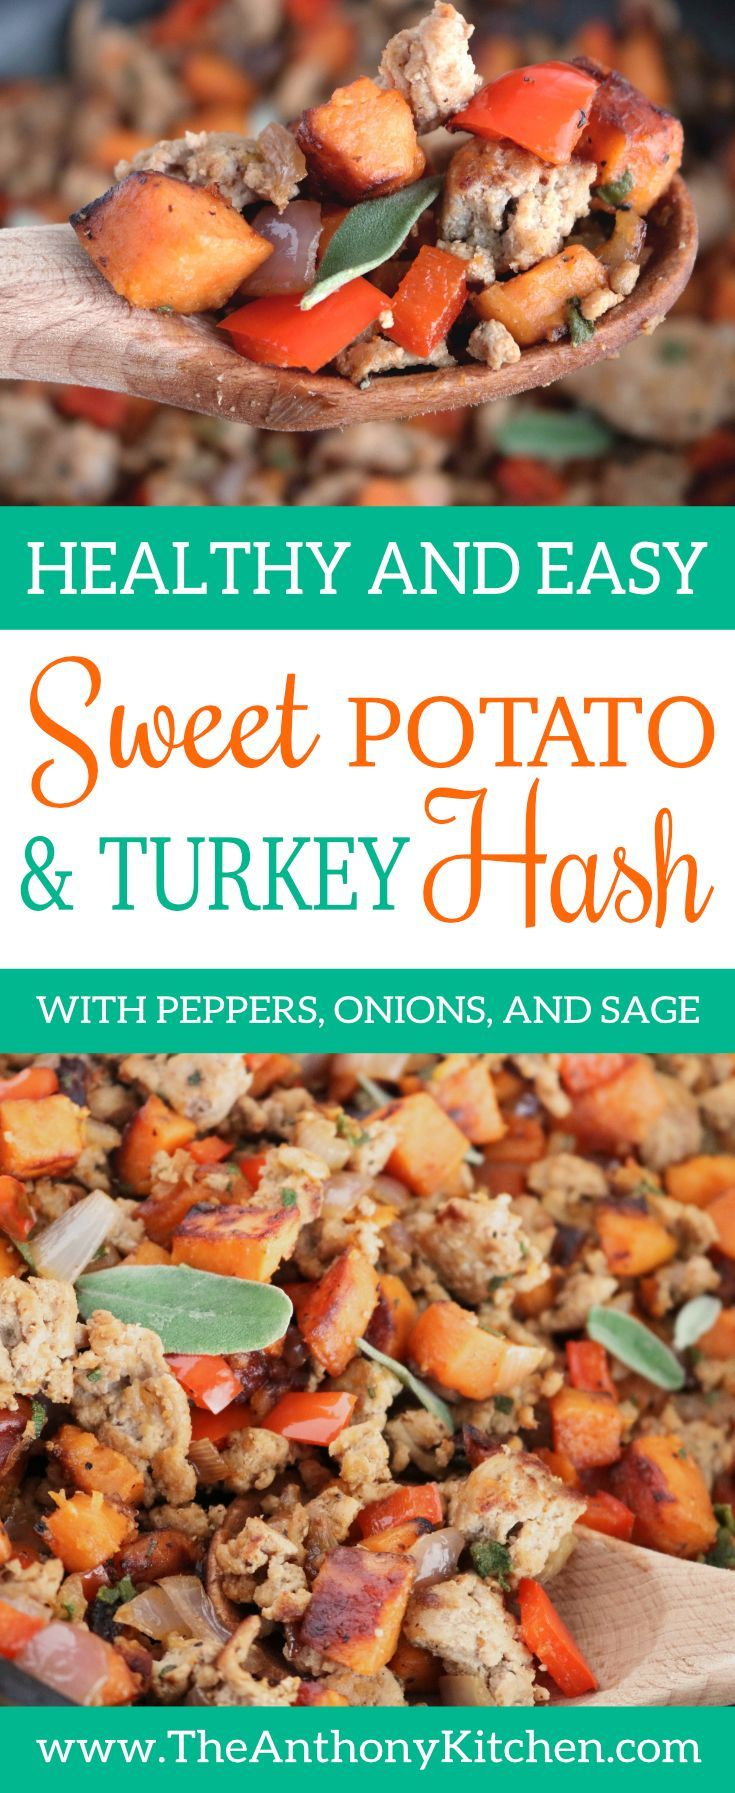 Breakfast Hash Recipe  An easy sweet potato hash, featuring ground turkey, peppers, onions and fresh sage.Eat as is, or top it with a fried egg!   #potatohashrecipe #turkeyhashrecipe #makeaheadbreakfast #sweetpotato #groundturkey